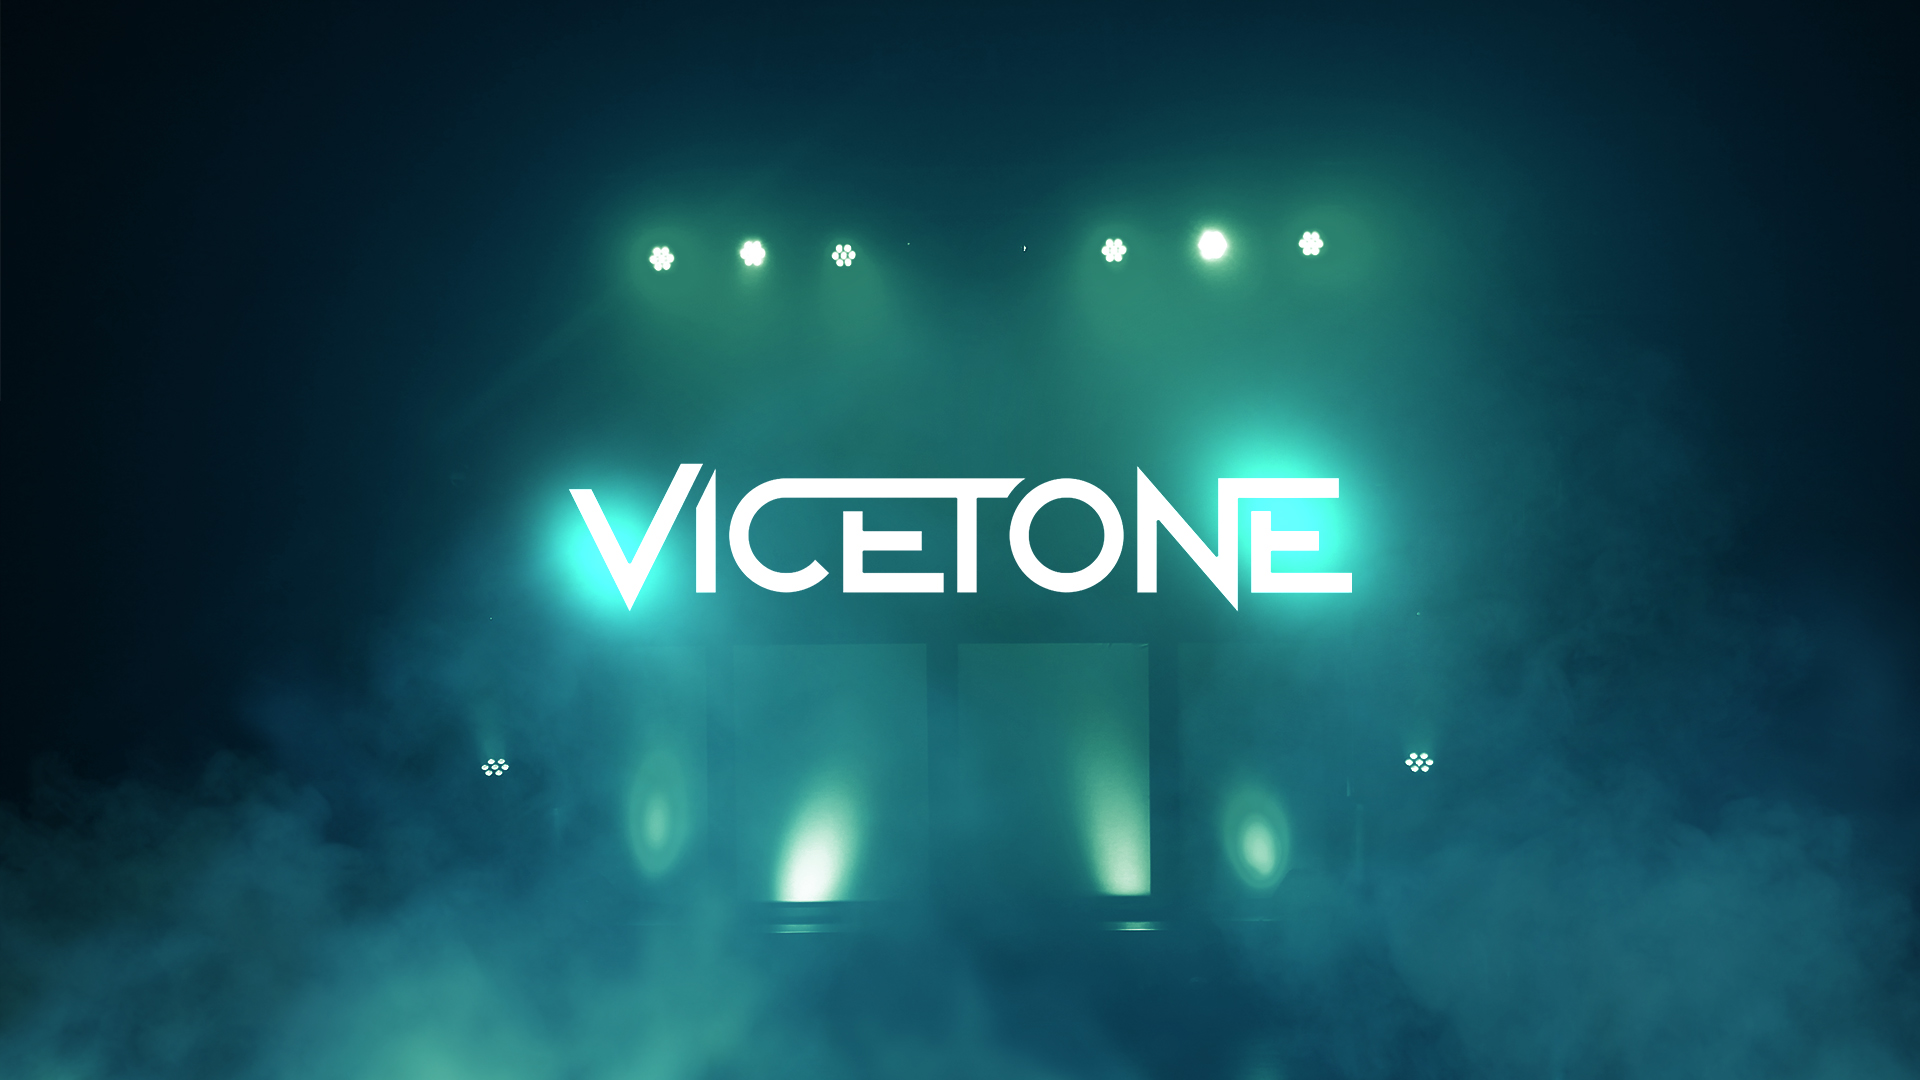 Download Wallpaper Music Tone - vicetone_wallpaper_by_jovicasmileski-d8lsxh4  Trends_174863.jpg